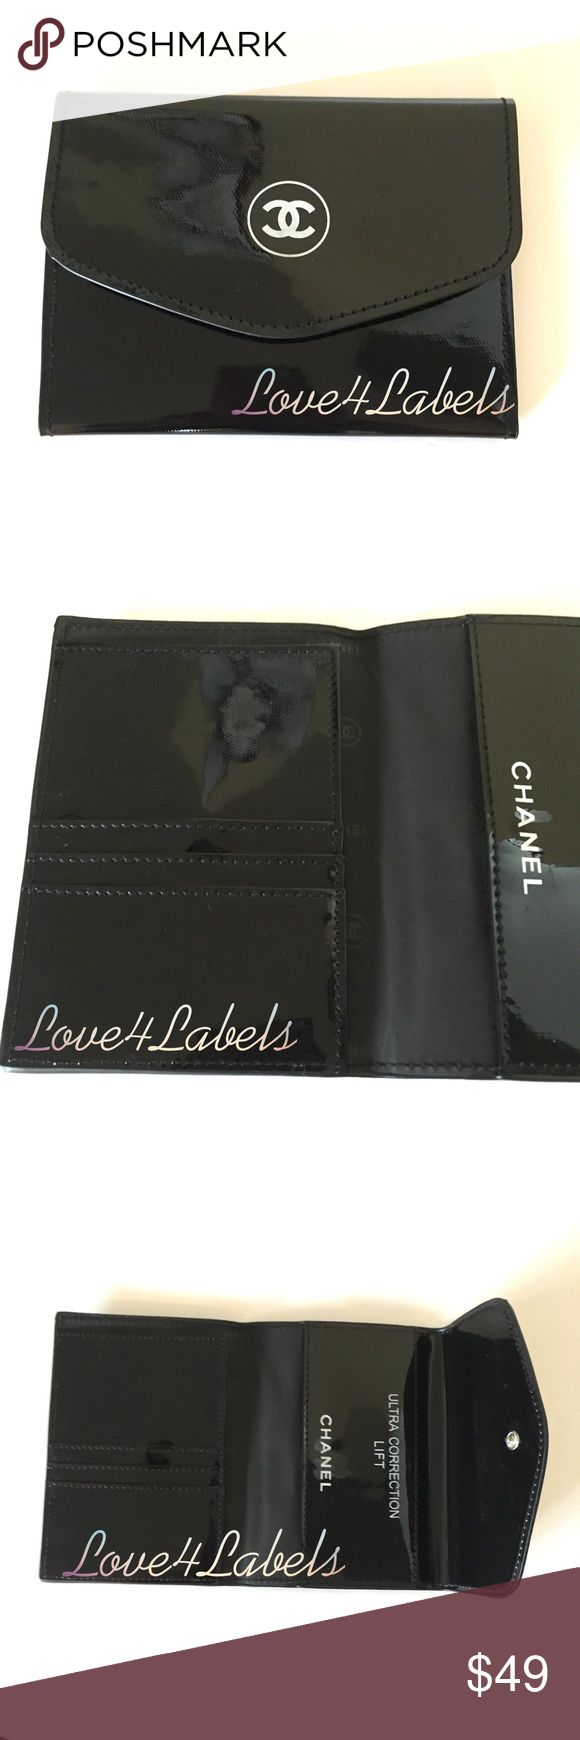 Chanel Passport Wallet‼️CLOSING SALE New VIP gift CHANEL Makeup